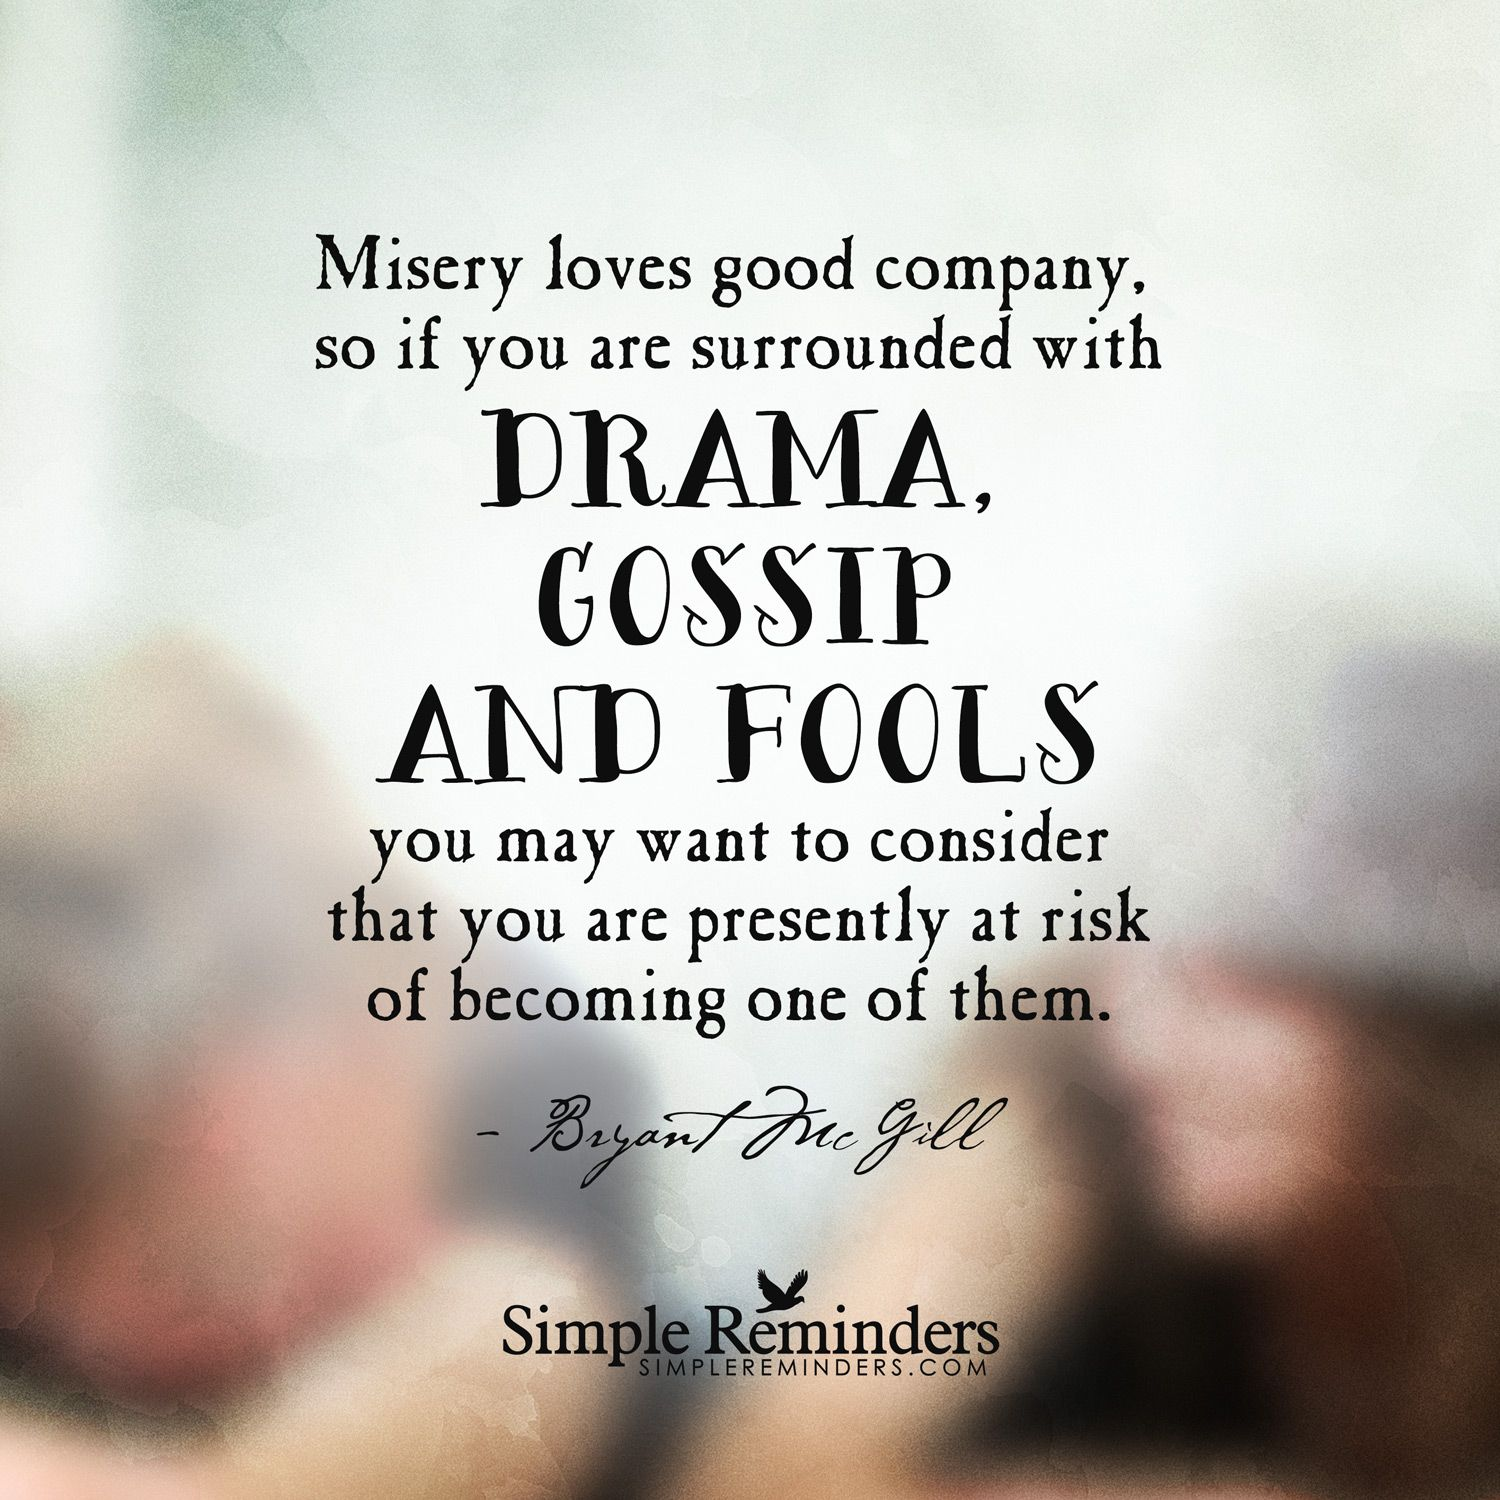 Misery Loves Company Quotes Fascinating Misery Loves Good Company So If You Are Surrounded With Drama Gos . Design Inspiration